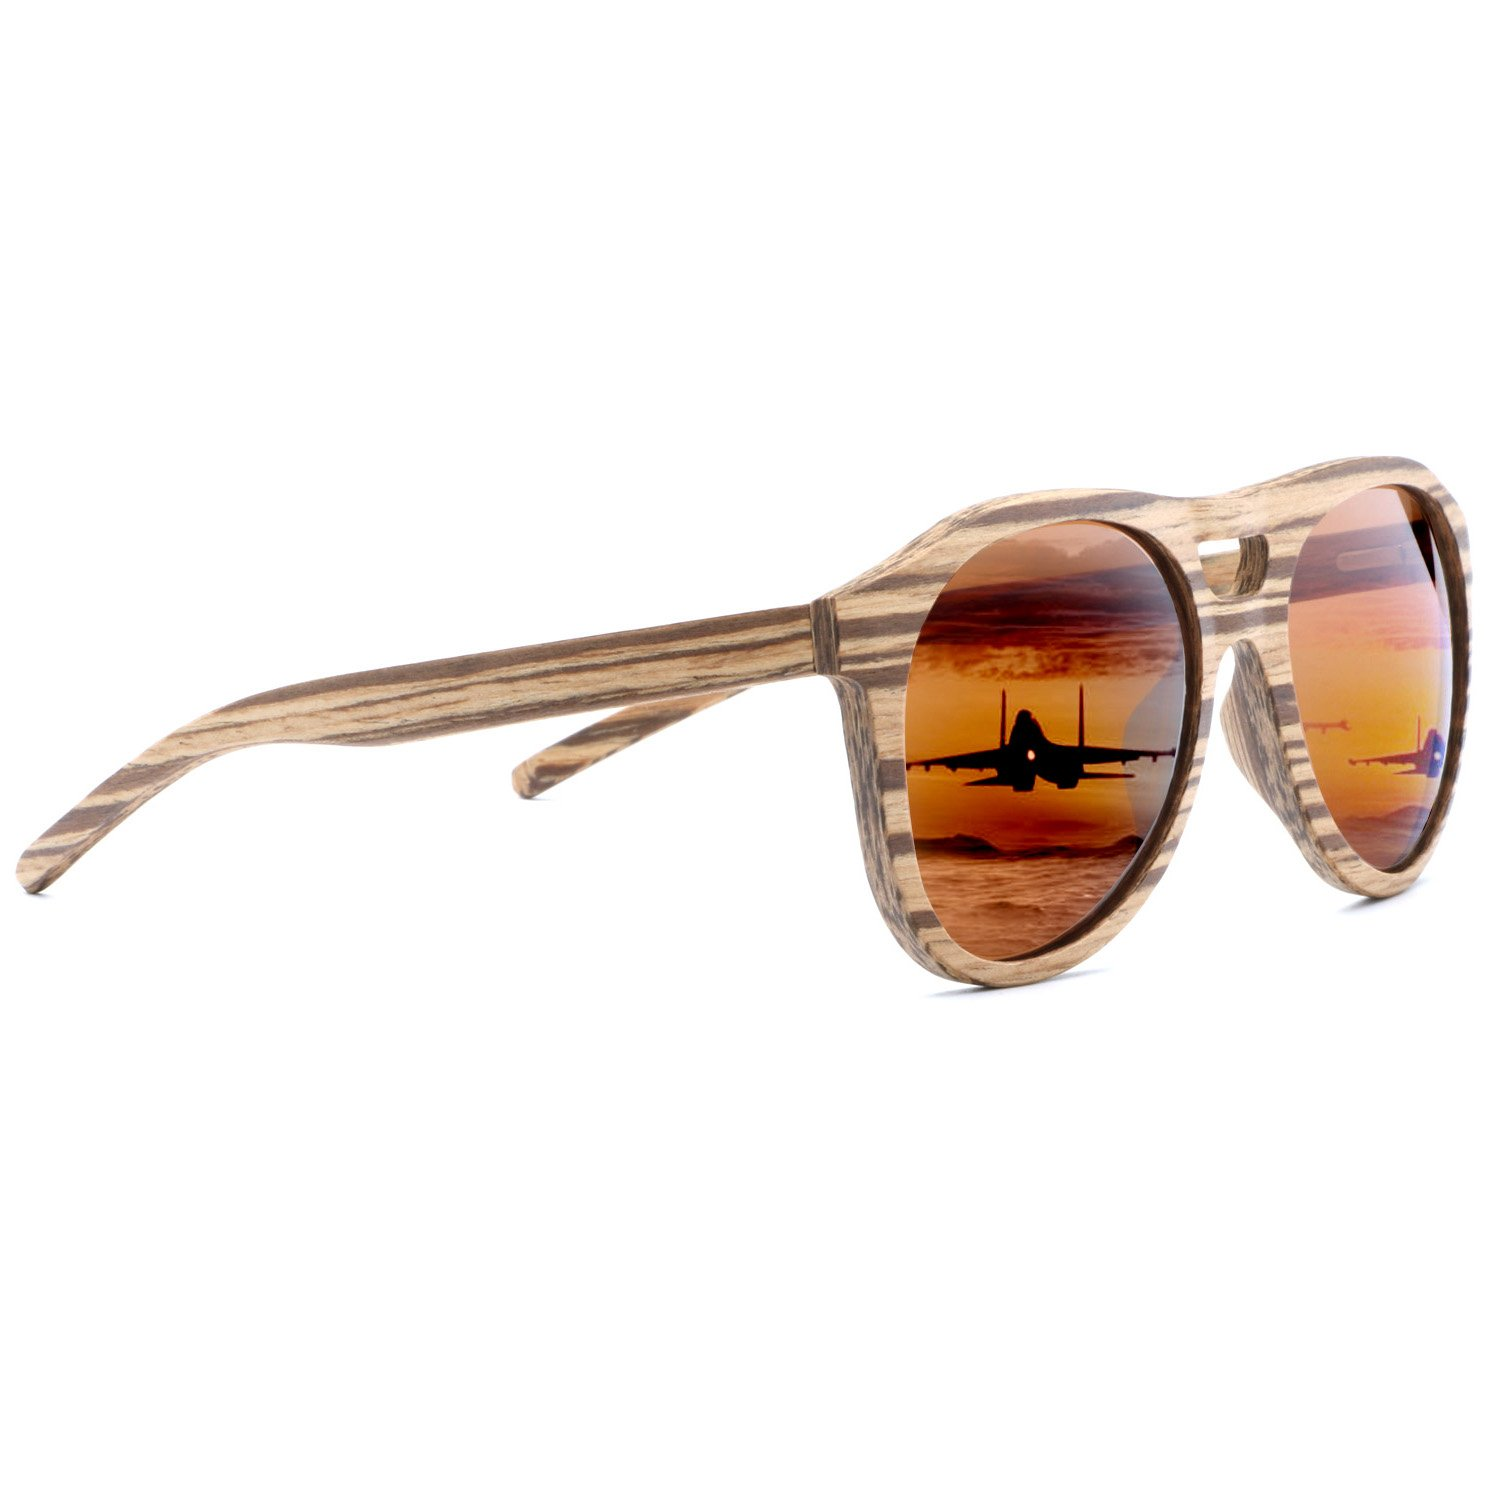 Zebrawood, Brown Ablibi Wood Polarized Sunglasses Men Classic Glasses lentes de sol para hombre in Wood Box